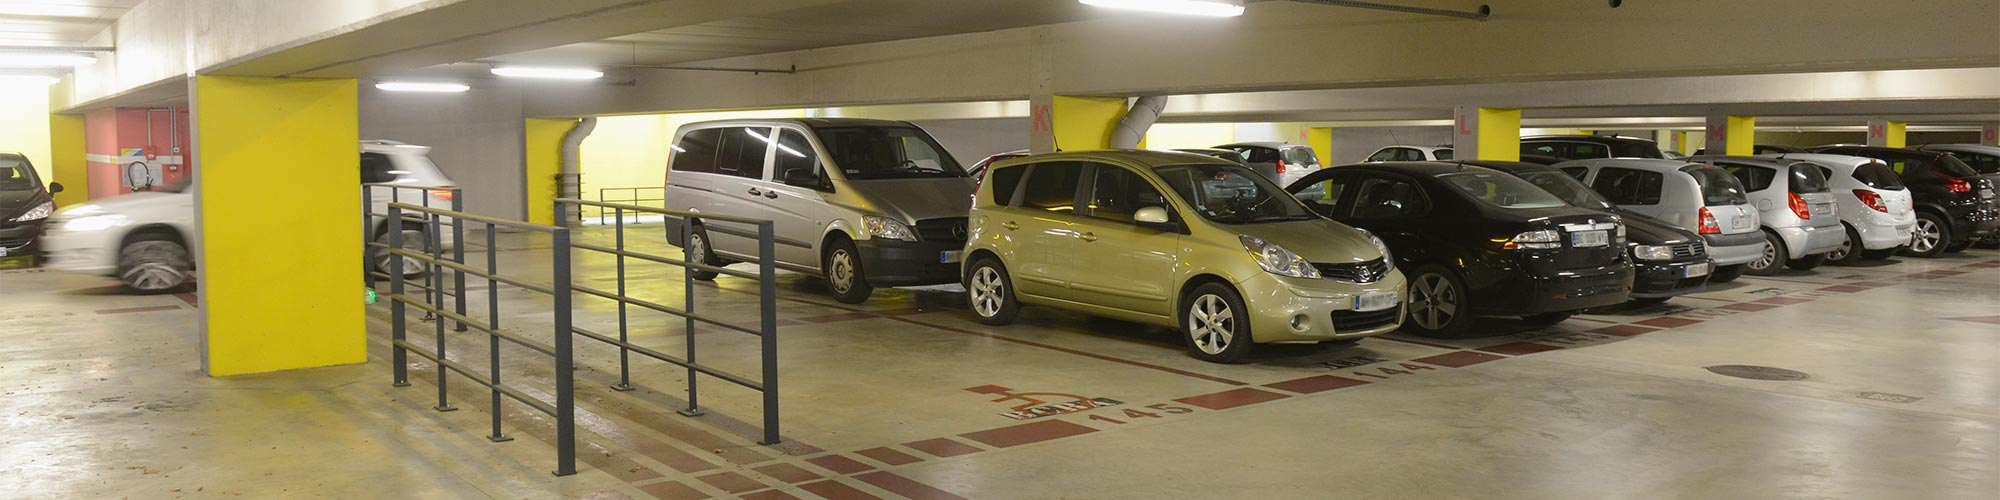 parking-saint-serge-angers